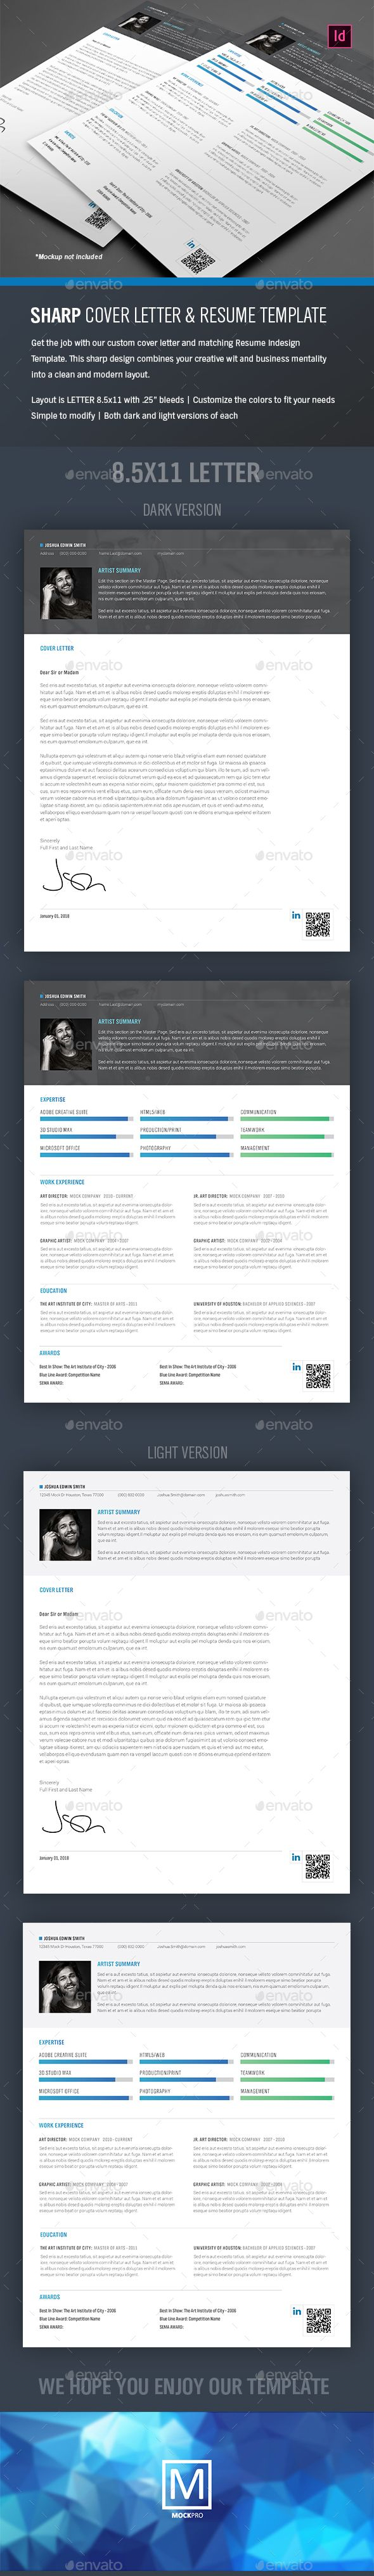 Sharp #Resume and Cover Letter - Indesign Template - #Resumes Stationery